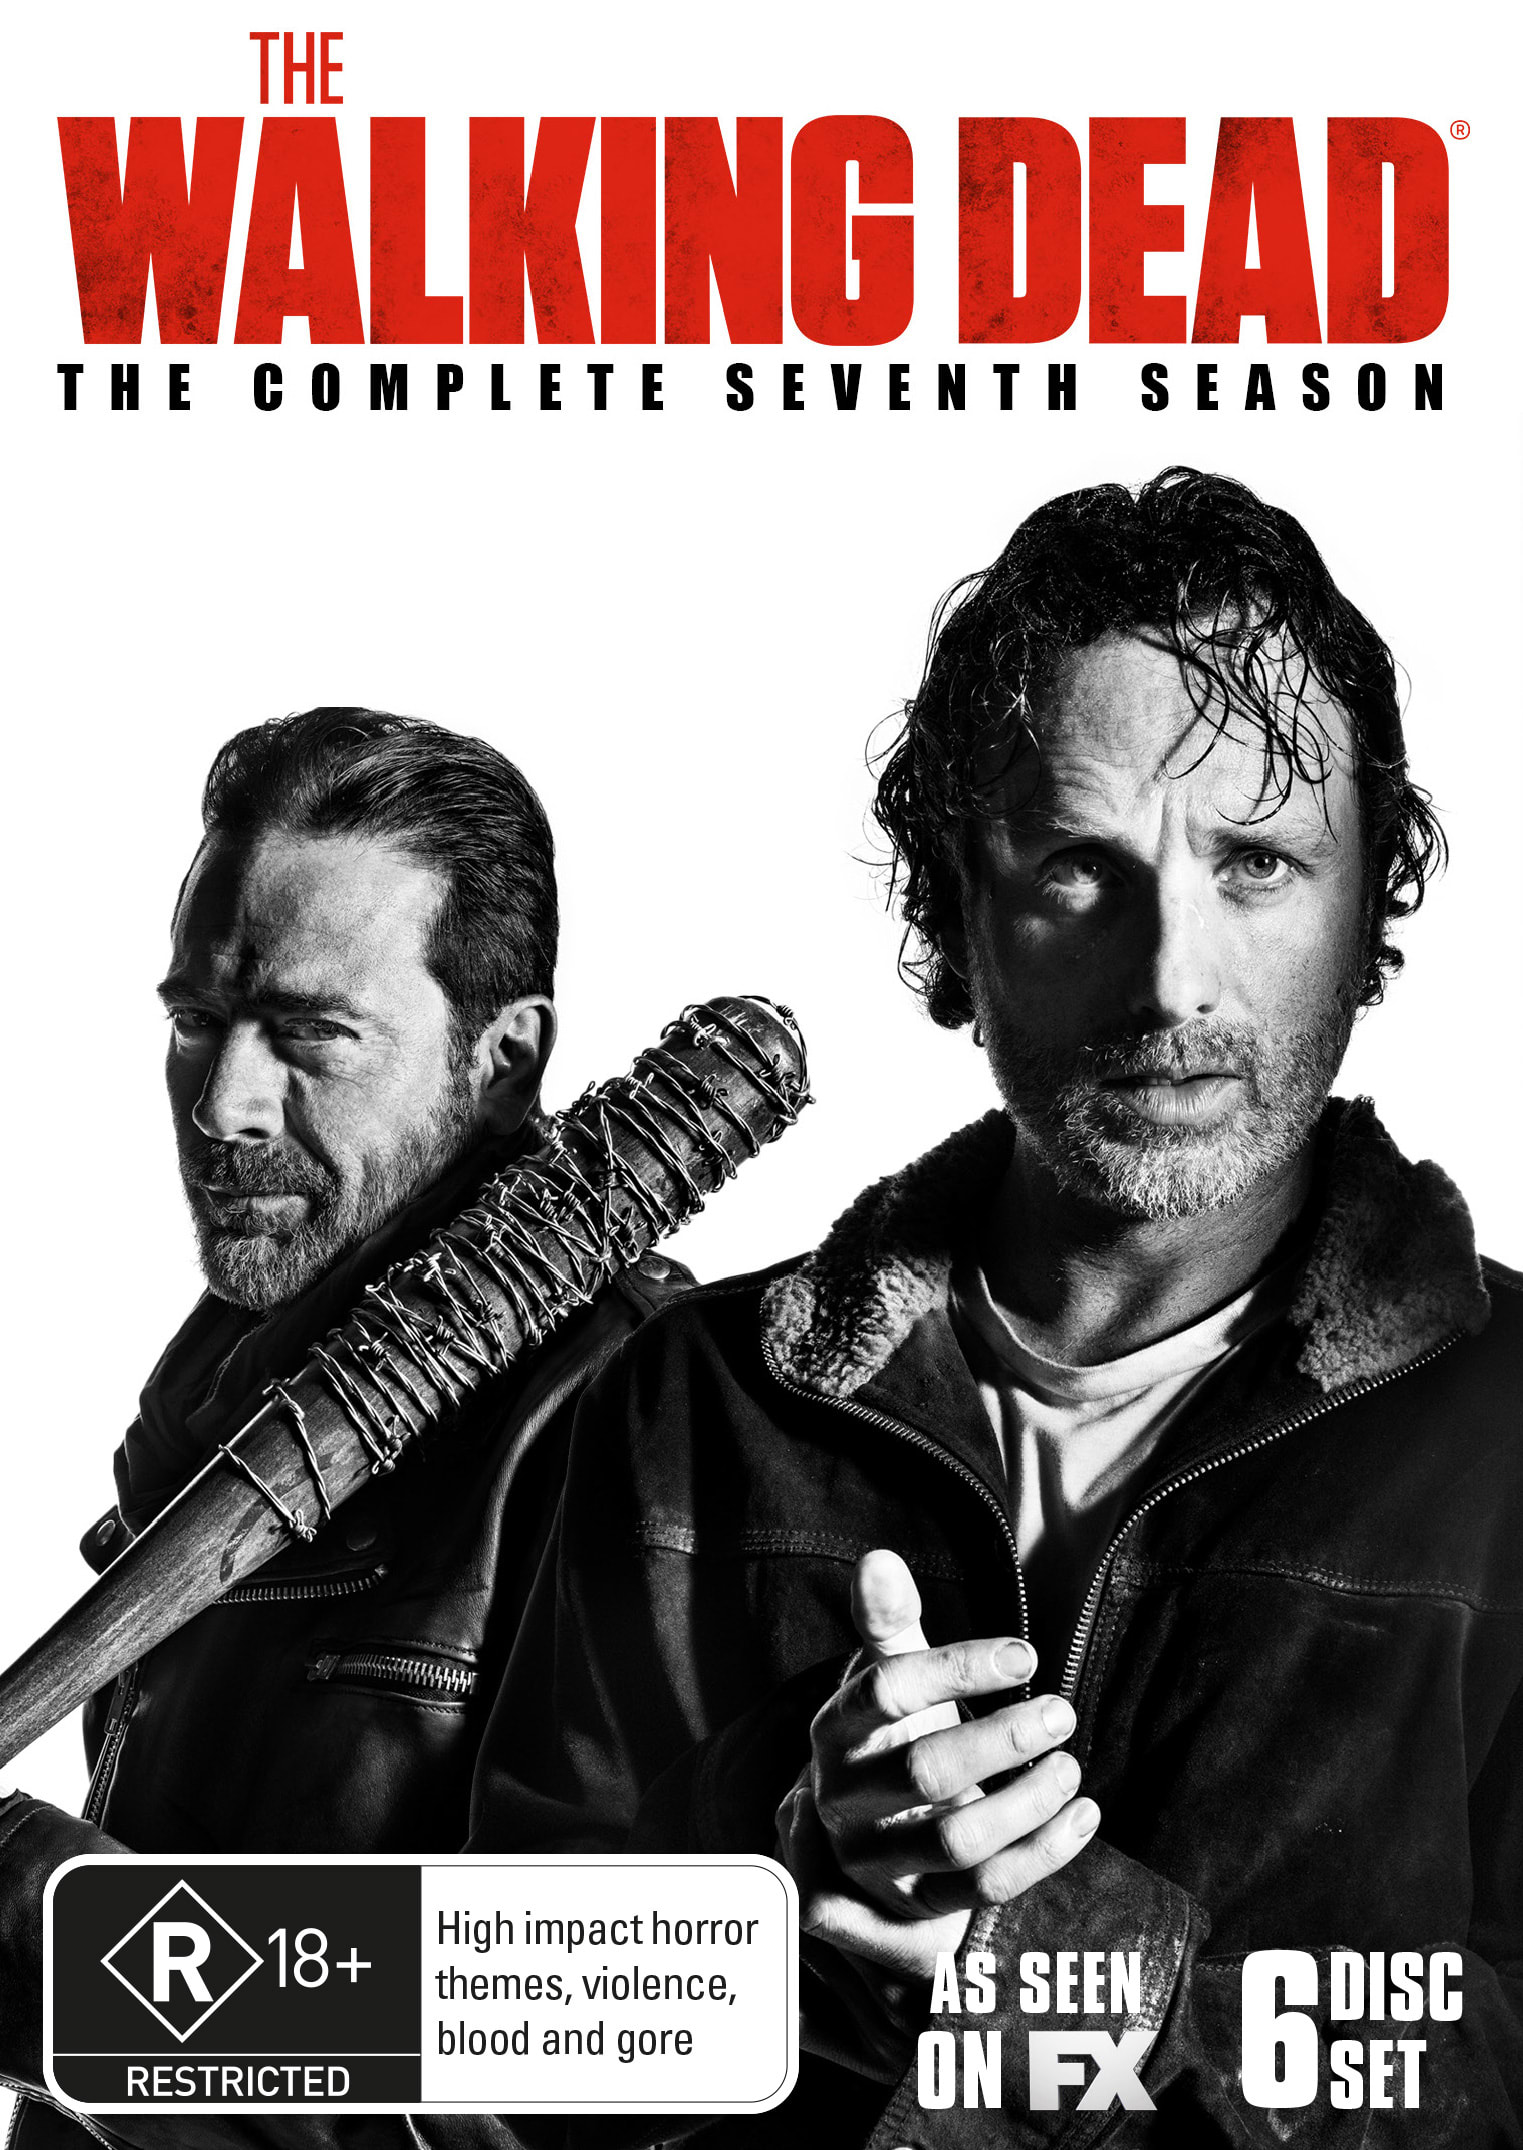 The Walking Dead: The Complete Seventh Season (Box Set) [DVD]